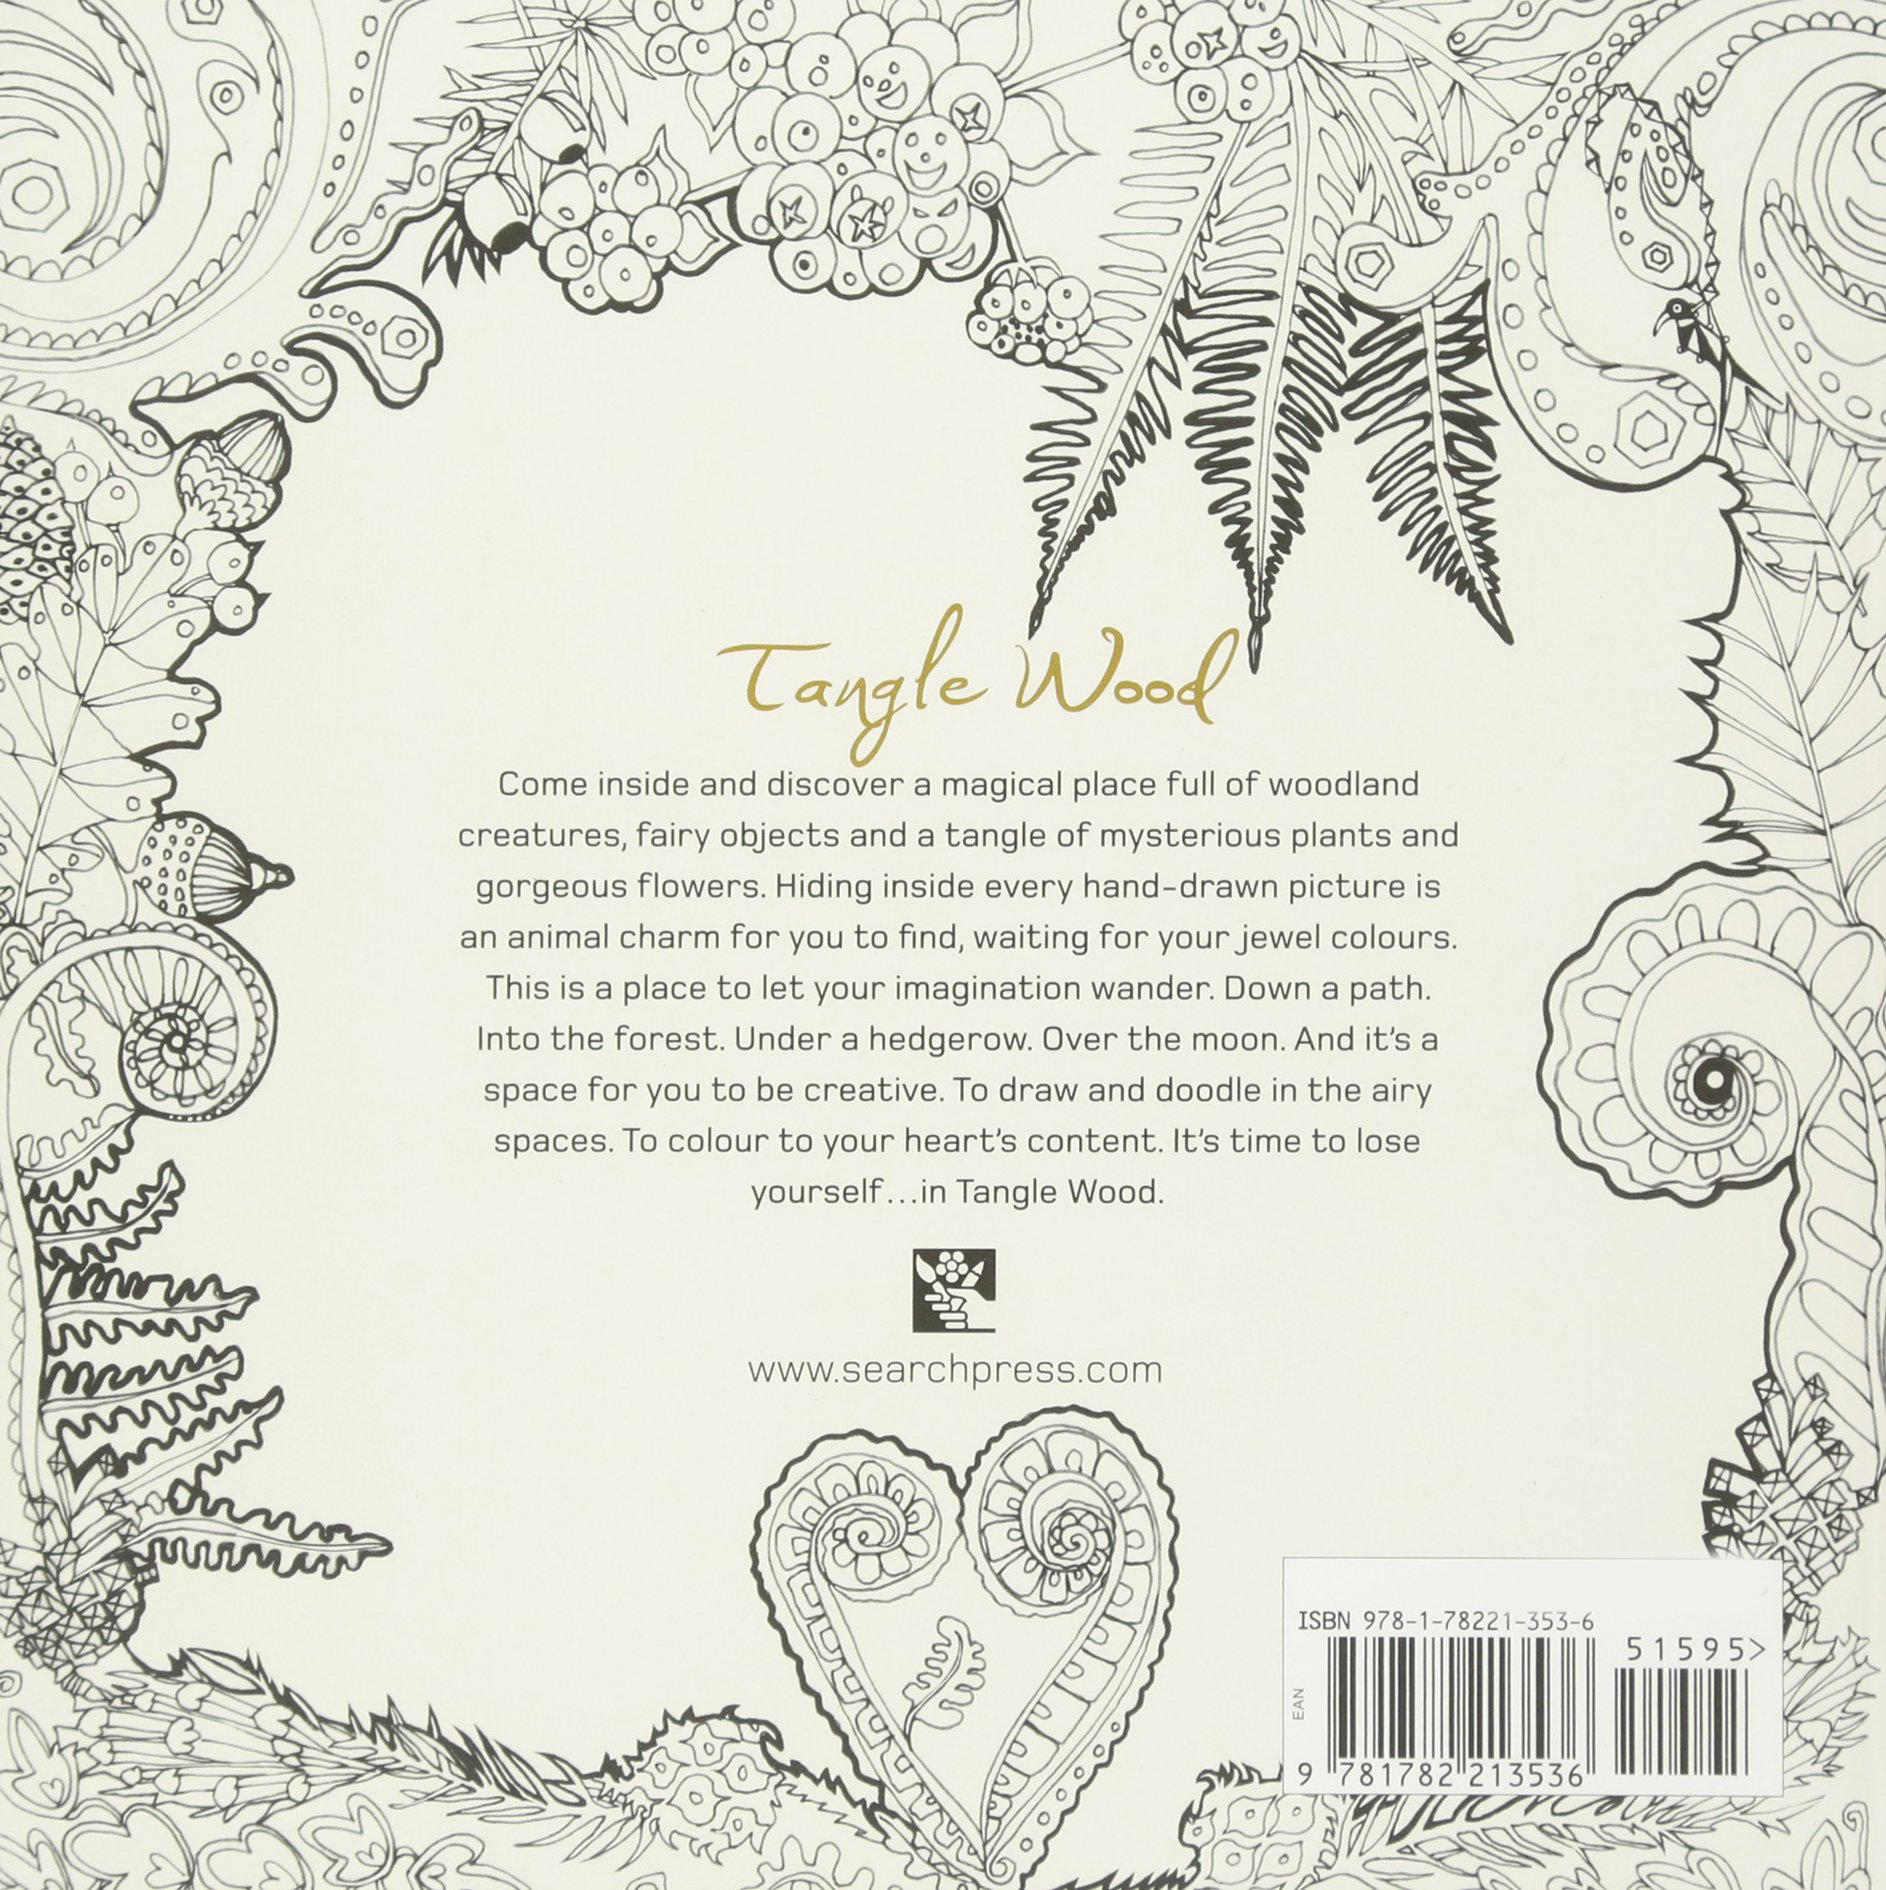 Tangle Wood A Captivating Colouring Book With Hidden Jewels Jessica Palmer 0499995258716 Amazon Books